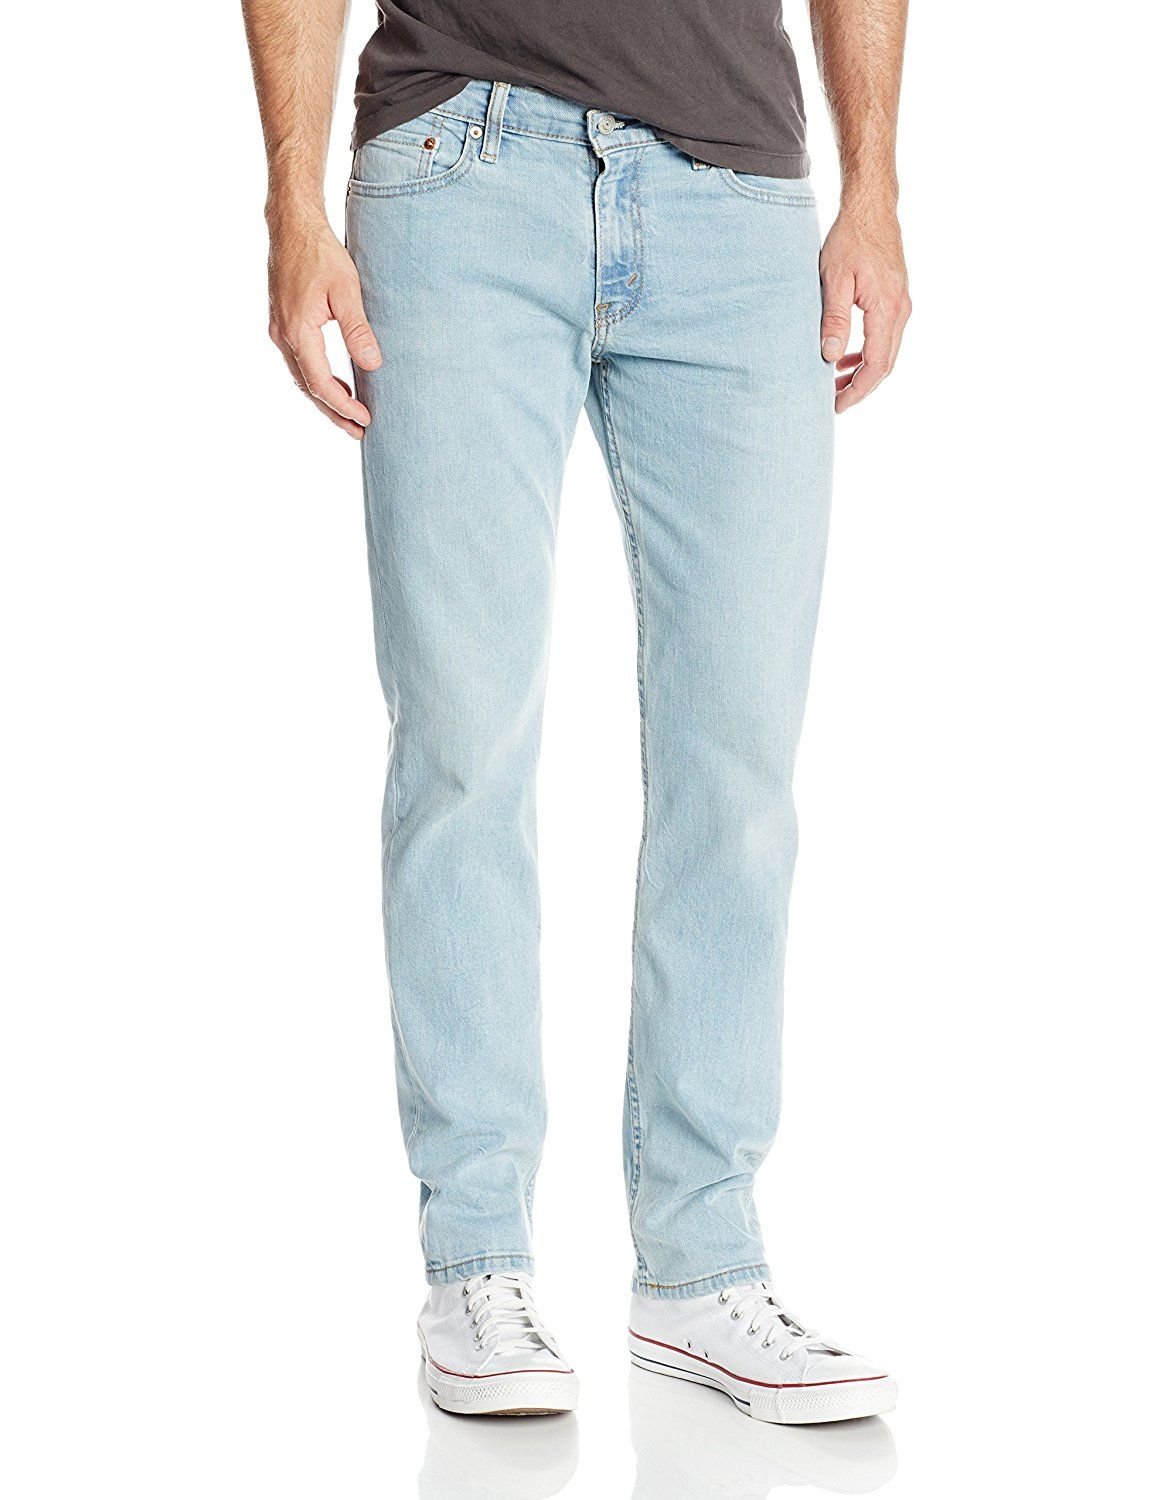 586f0ccc261 Levi's Men's 511 Slim Fit Jeans Stretch at Amazon Men's Clothing store: